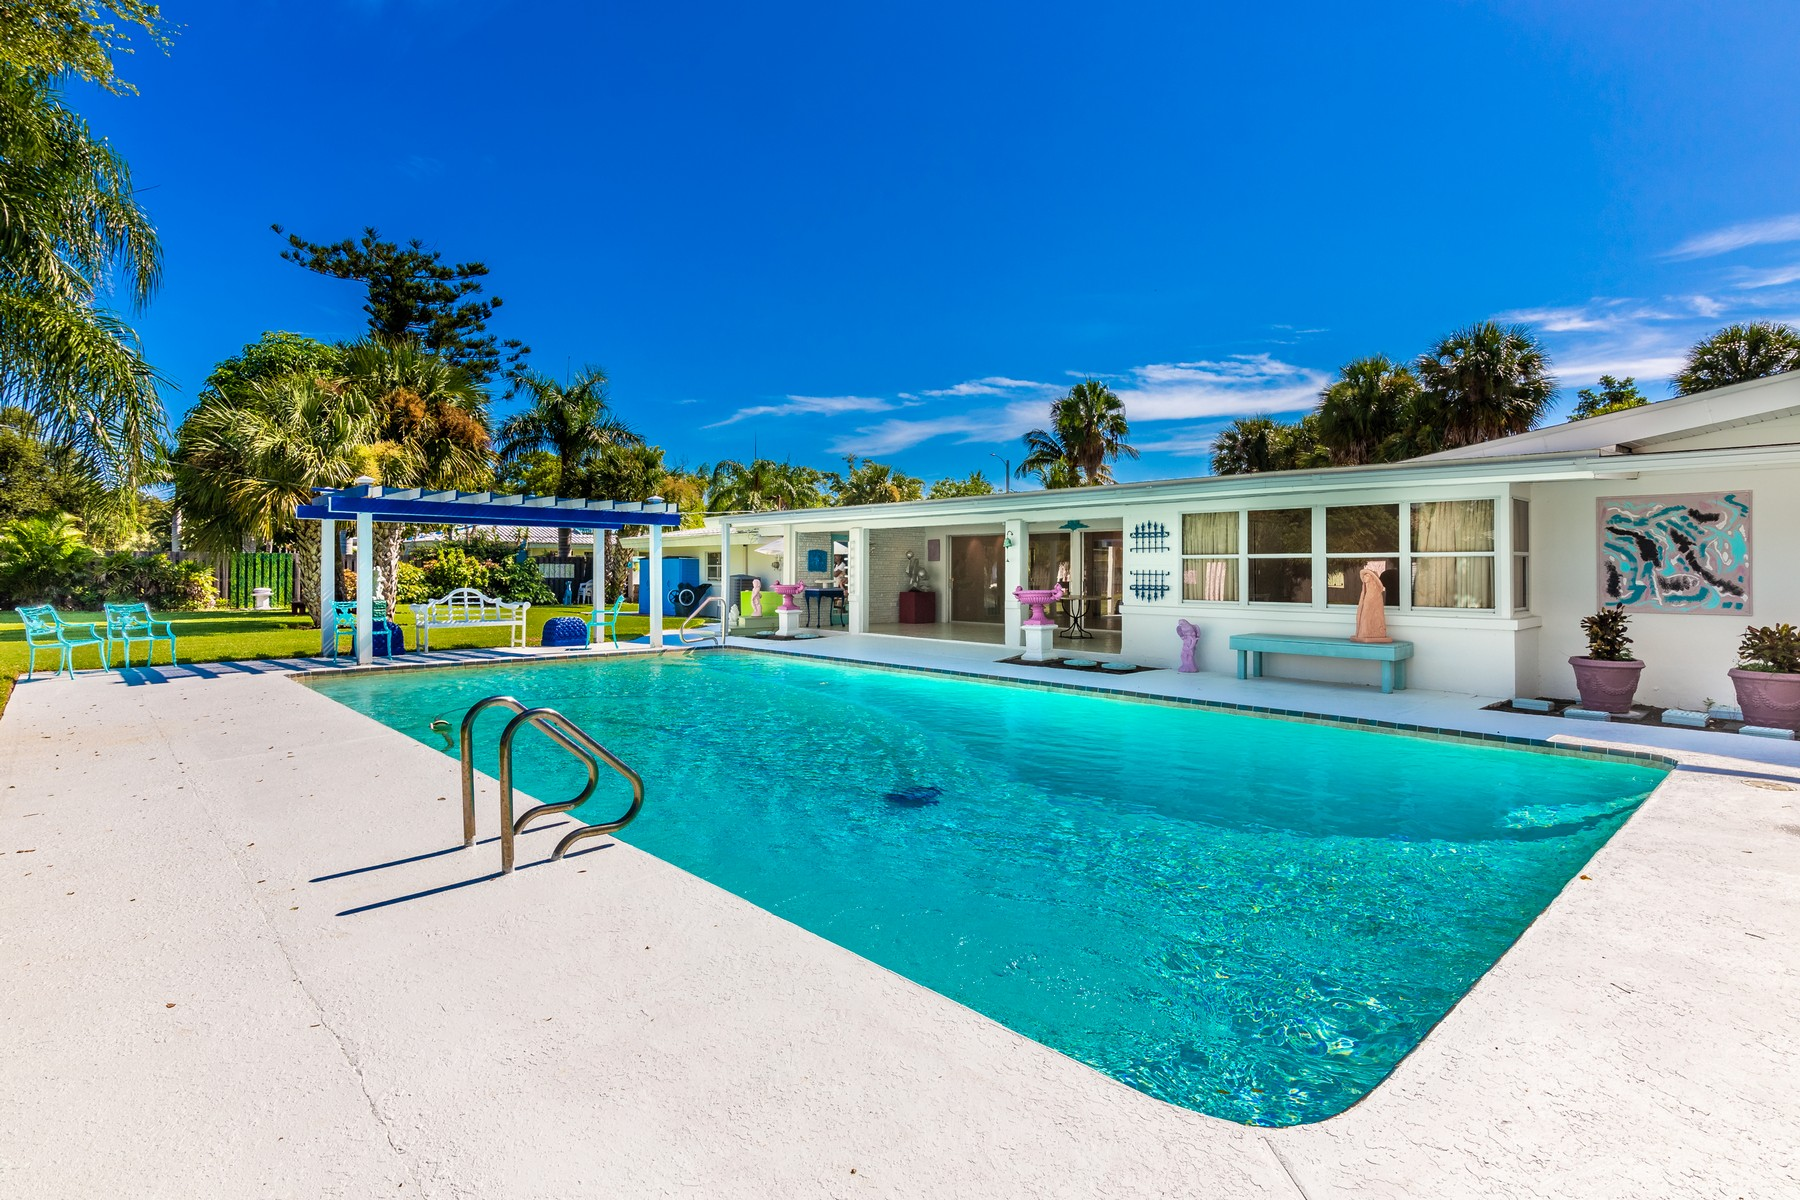 Additional photo for property listing at Mid-Century Artists' Delight with Amenities Galore! 1202 S Ramona Avenue Indialantic, Florida 32903 United States